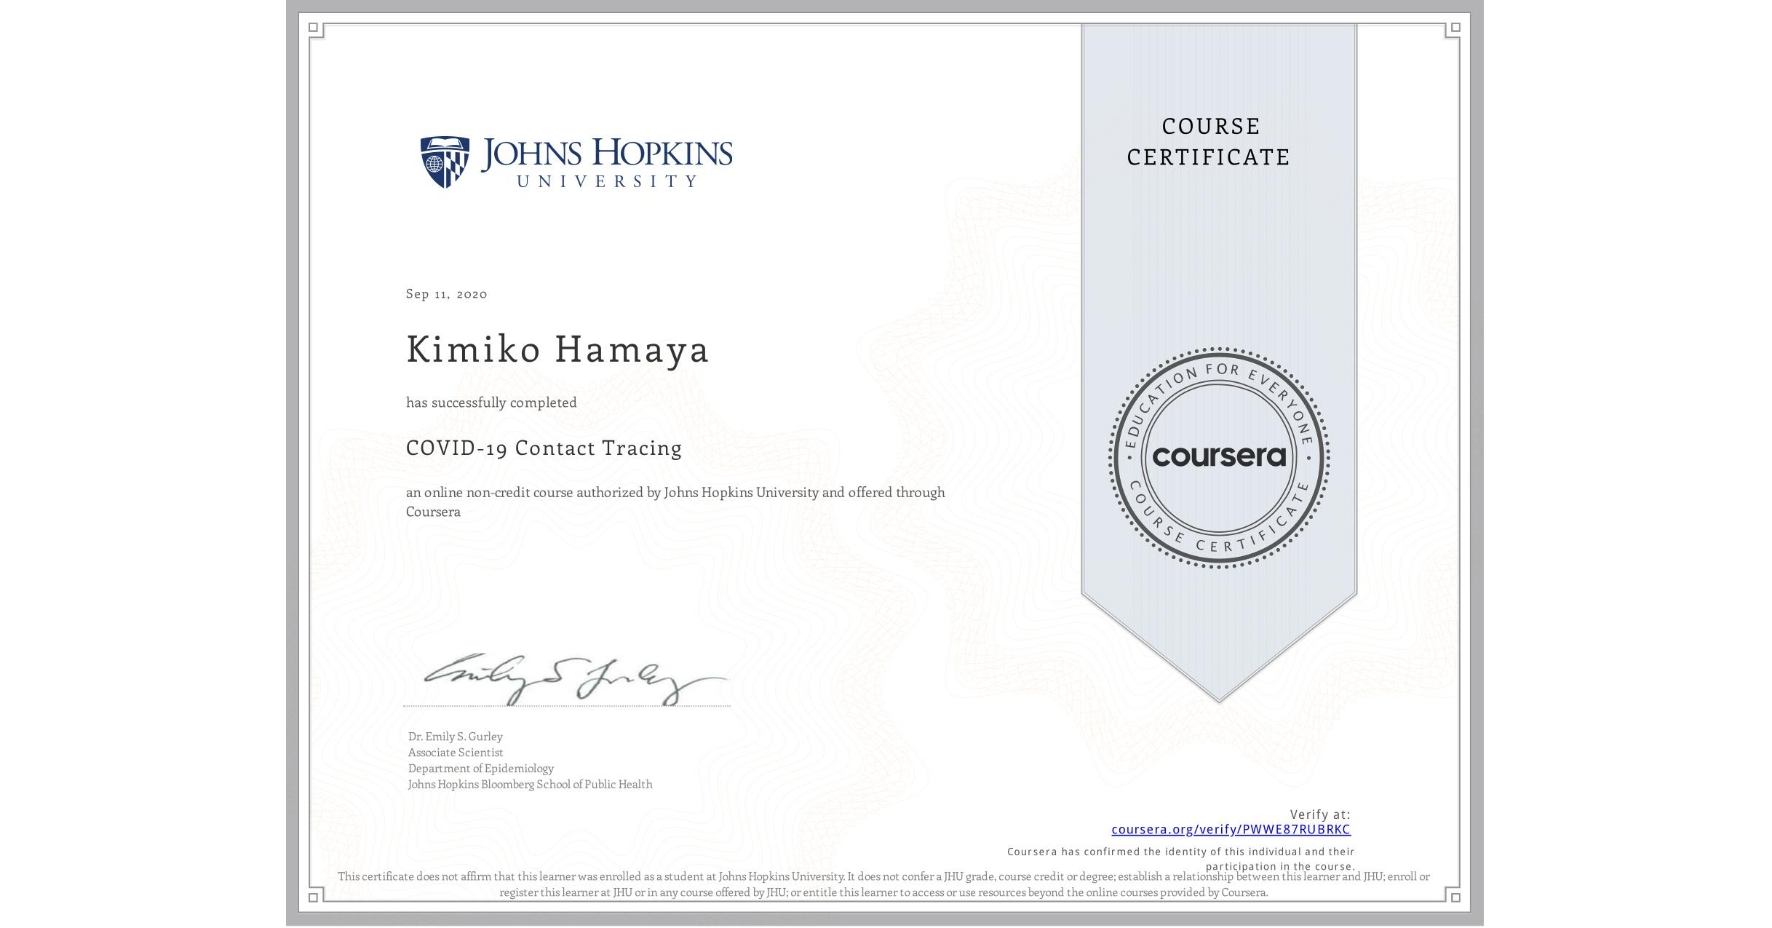 View certificate for Kimiko Hamaya, COVID-19 Contact Tracing, an online non-credit course authorized by Johns Hopkins University and offered through Coursera